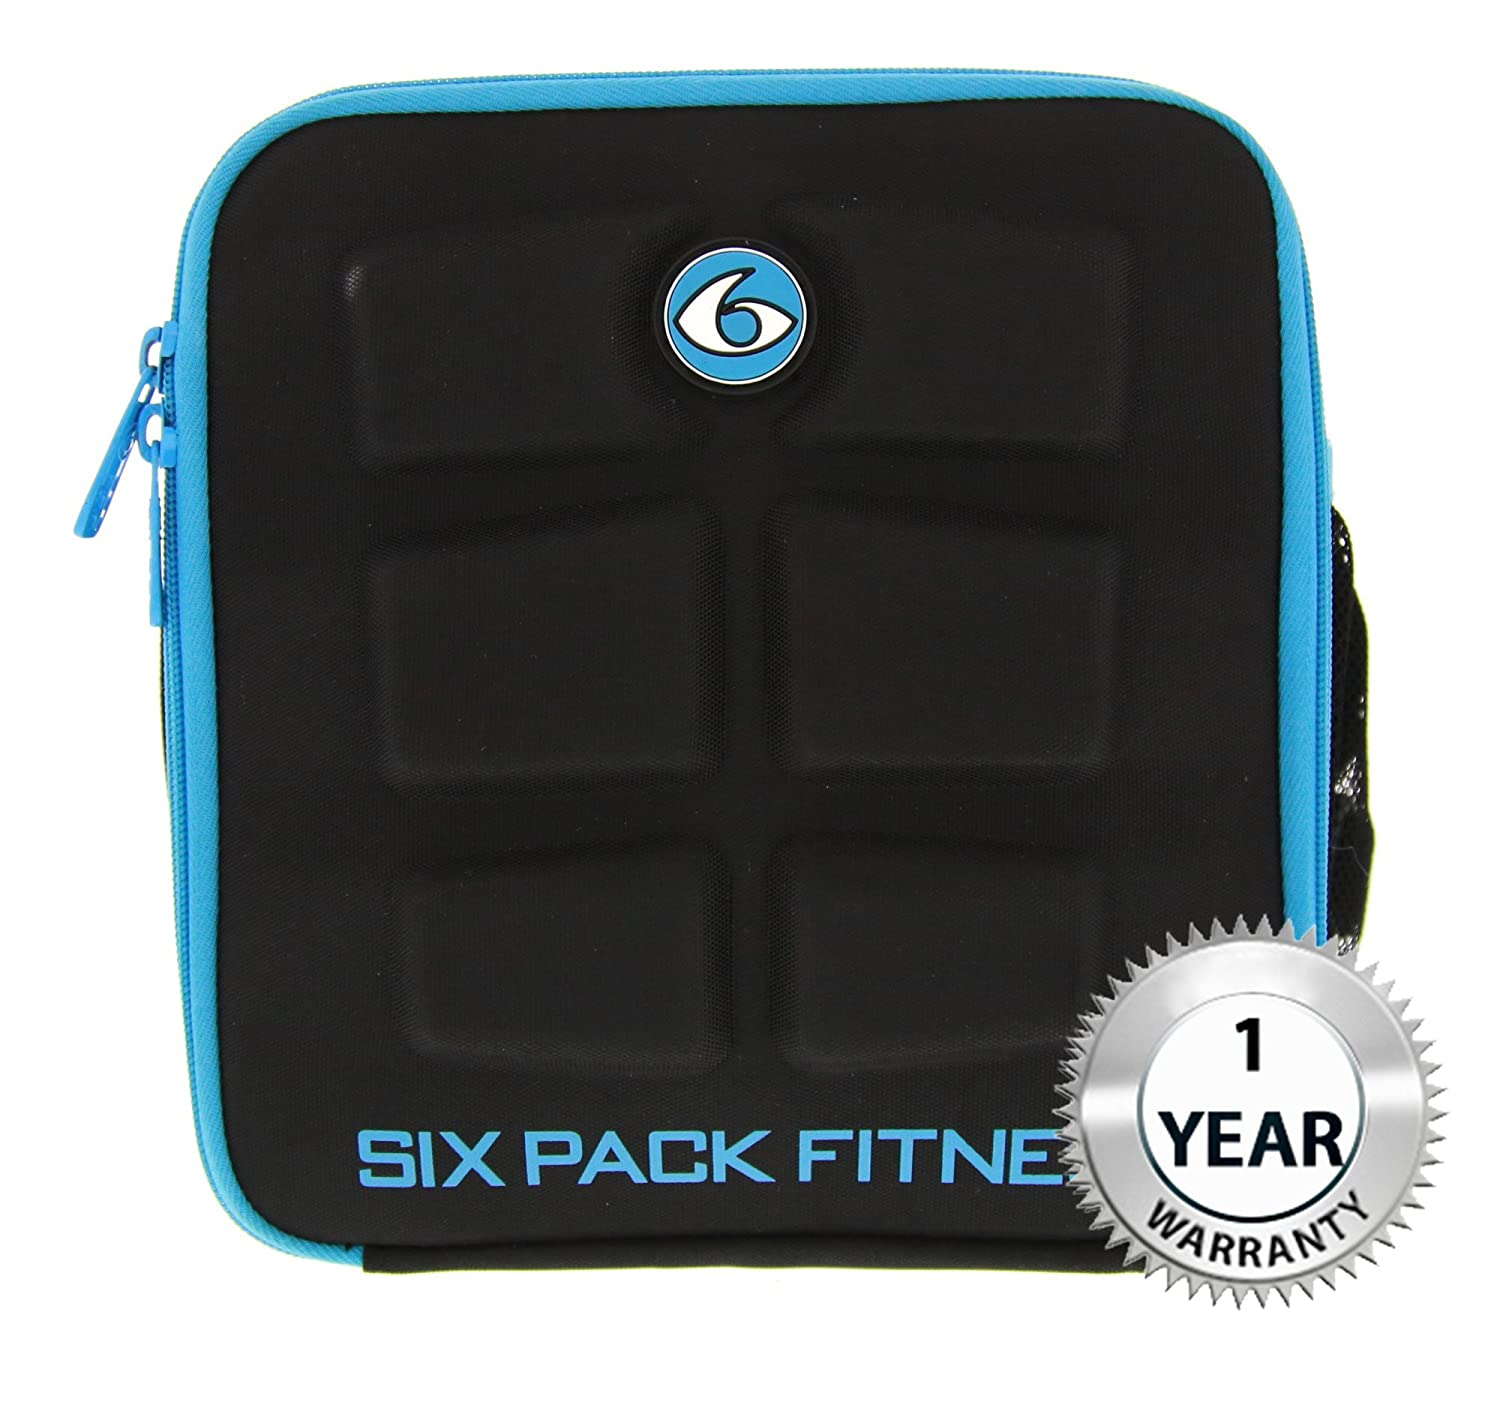 Meal 6 Pack Fitness Cube Americas #1 Choice in Meal Management 3 Stealth Black